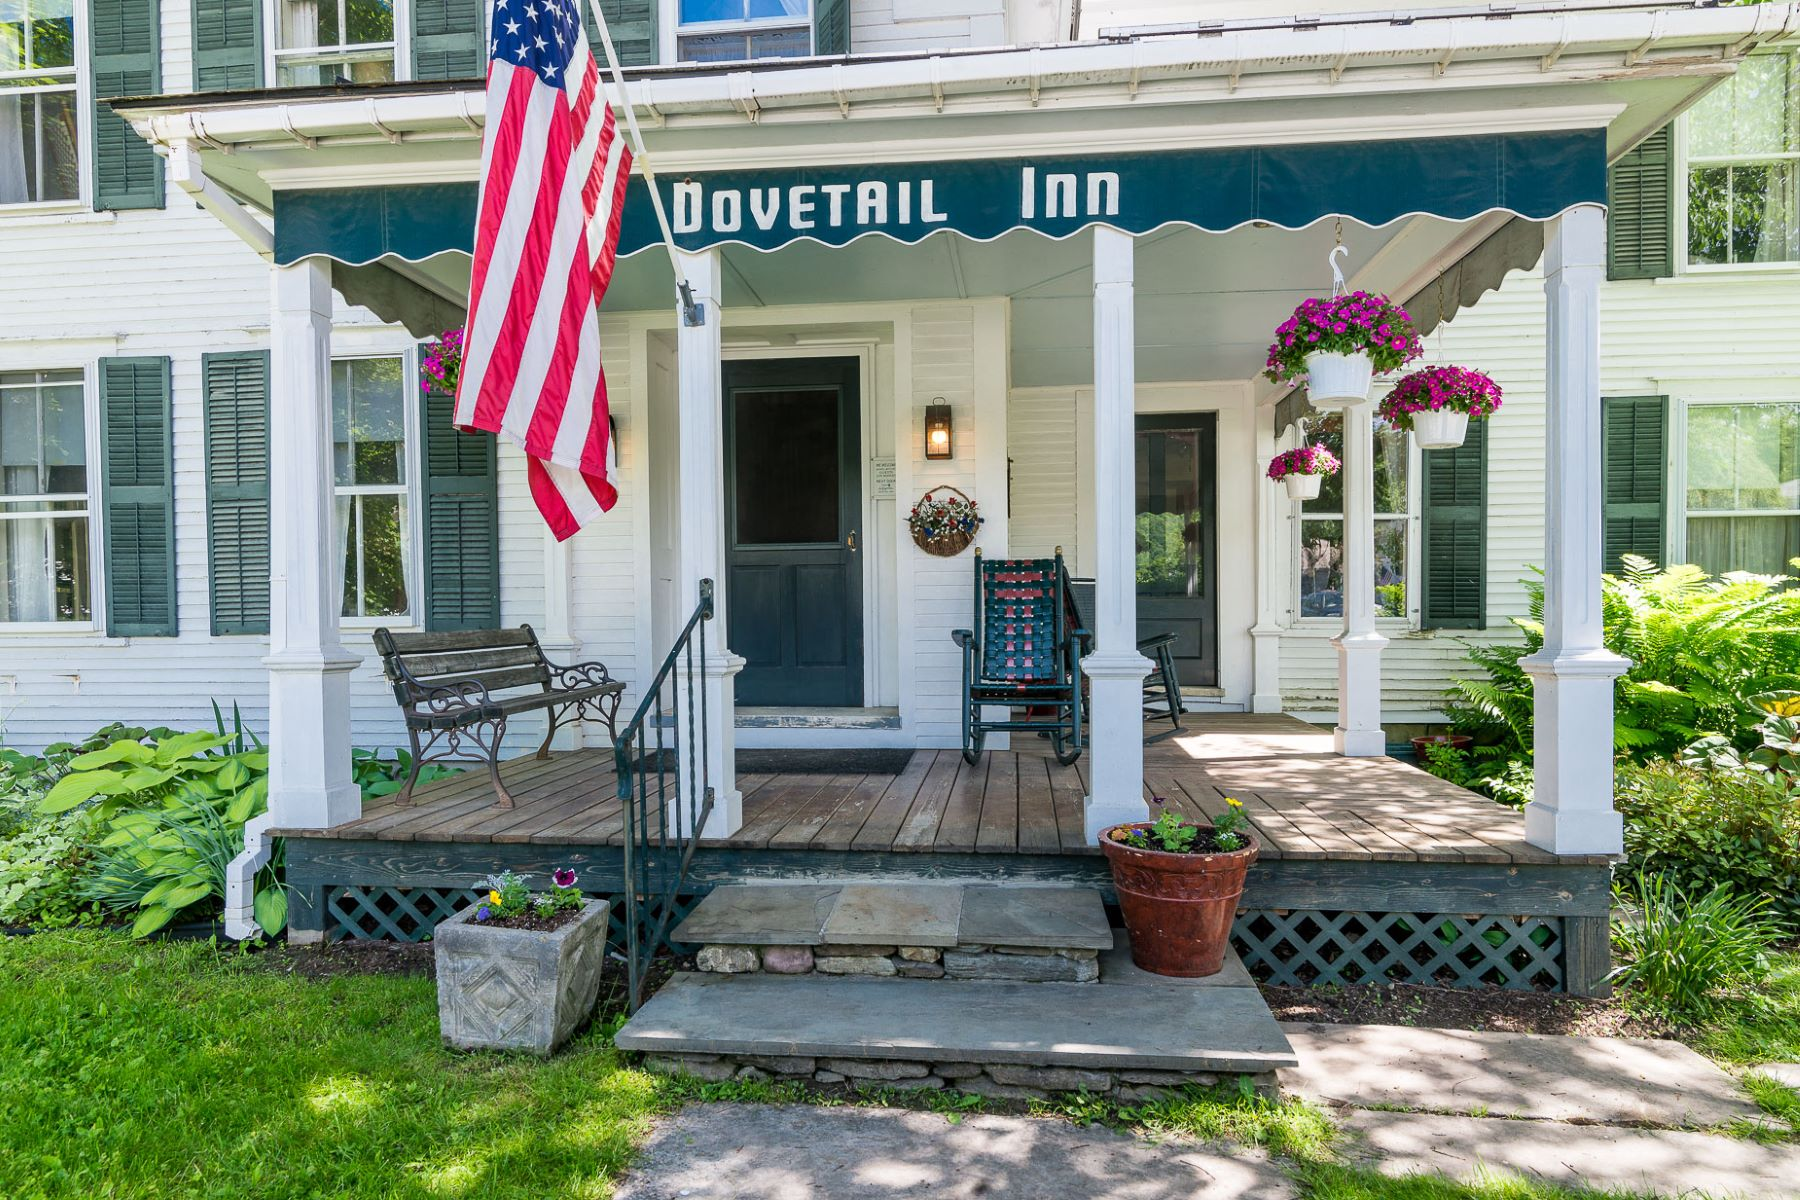 واحد منزل الأسرة للـ Sale في Unique Dorset Opportunity 3378 Route 30 Dorset, Vermont, 05251 United States